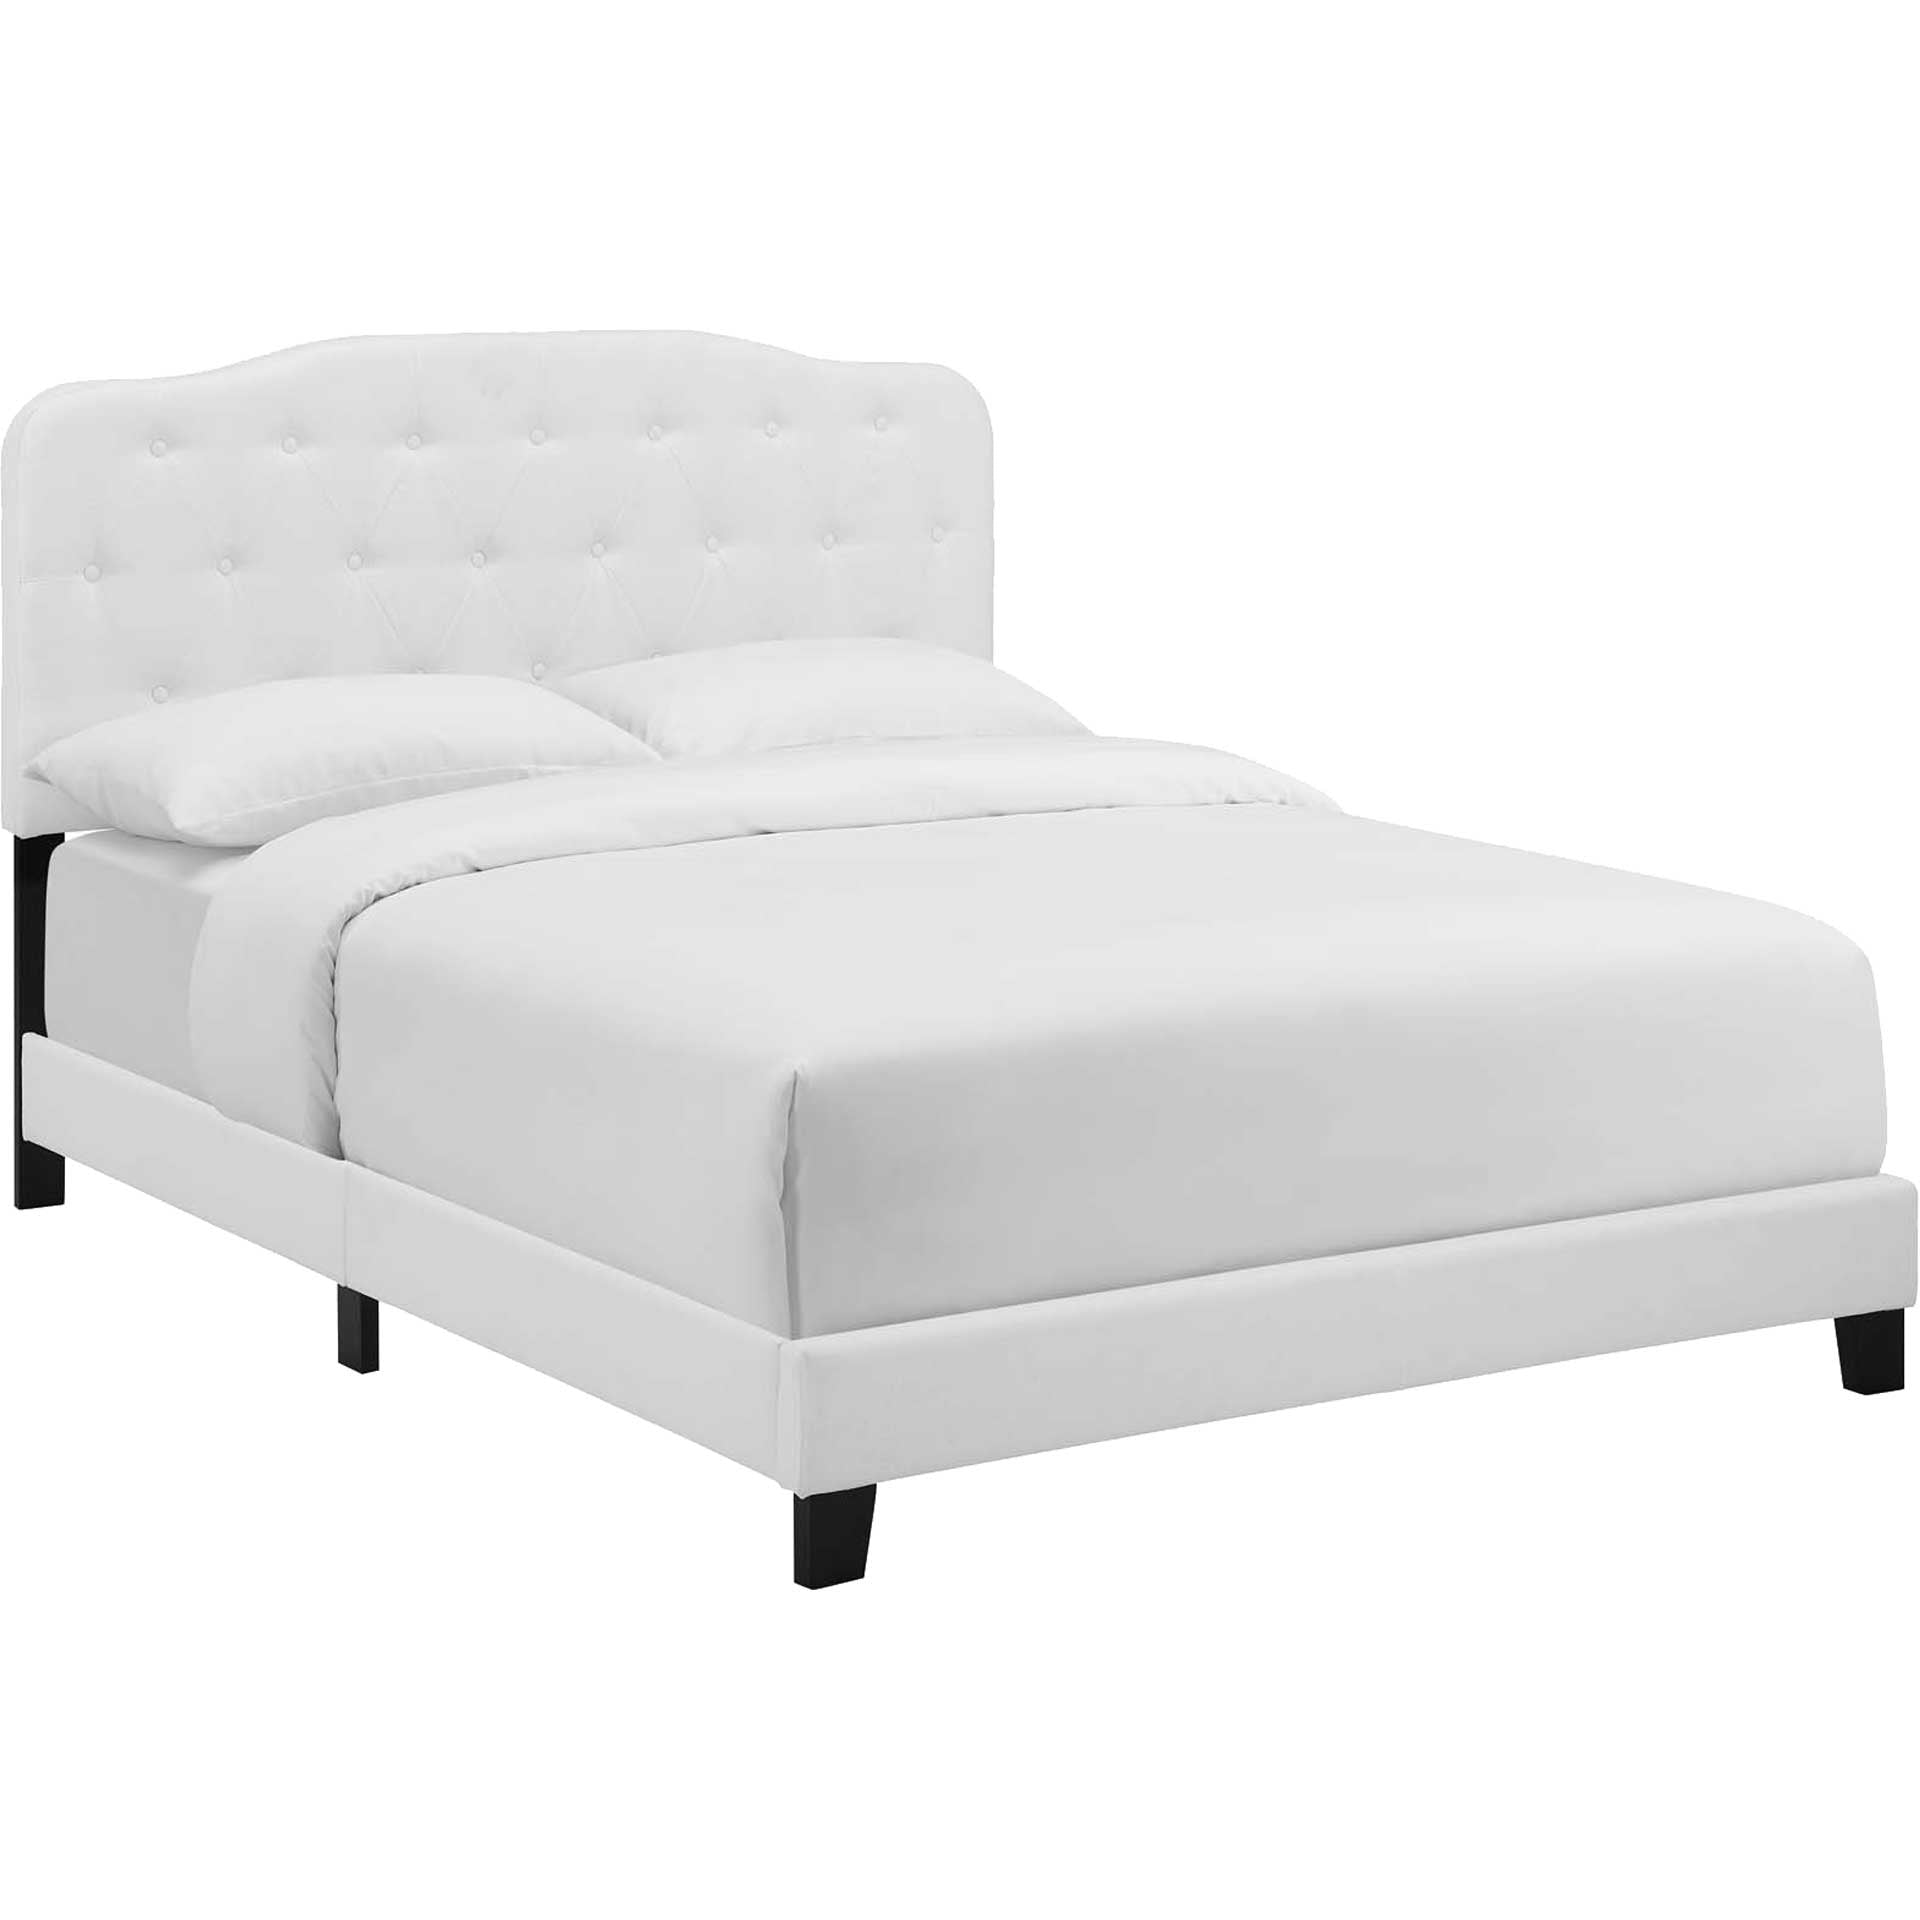 Amelie Upholstered Fabric Bed White